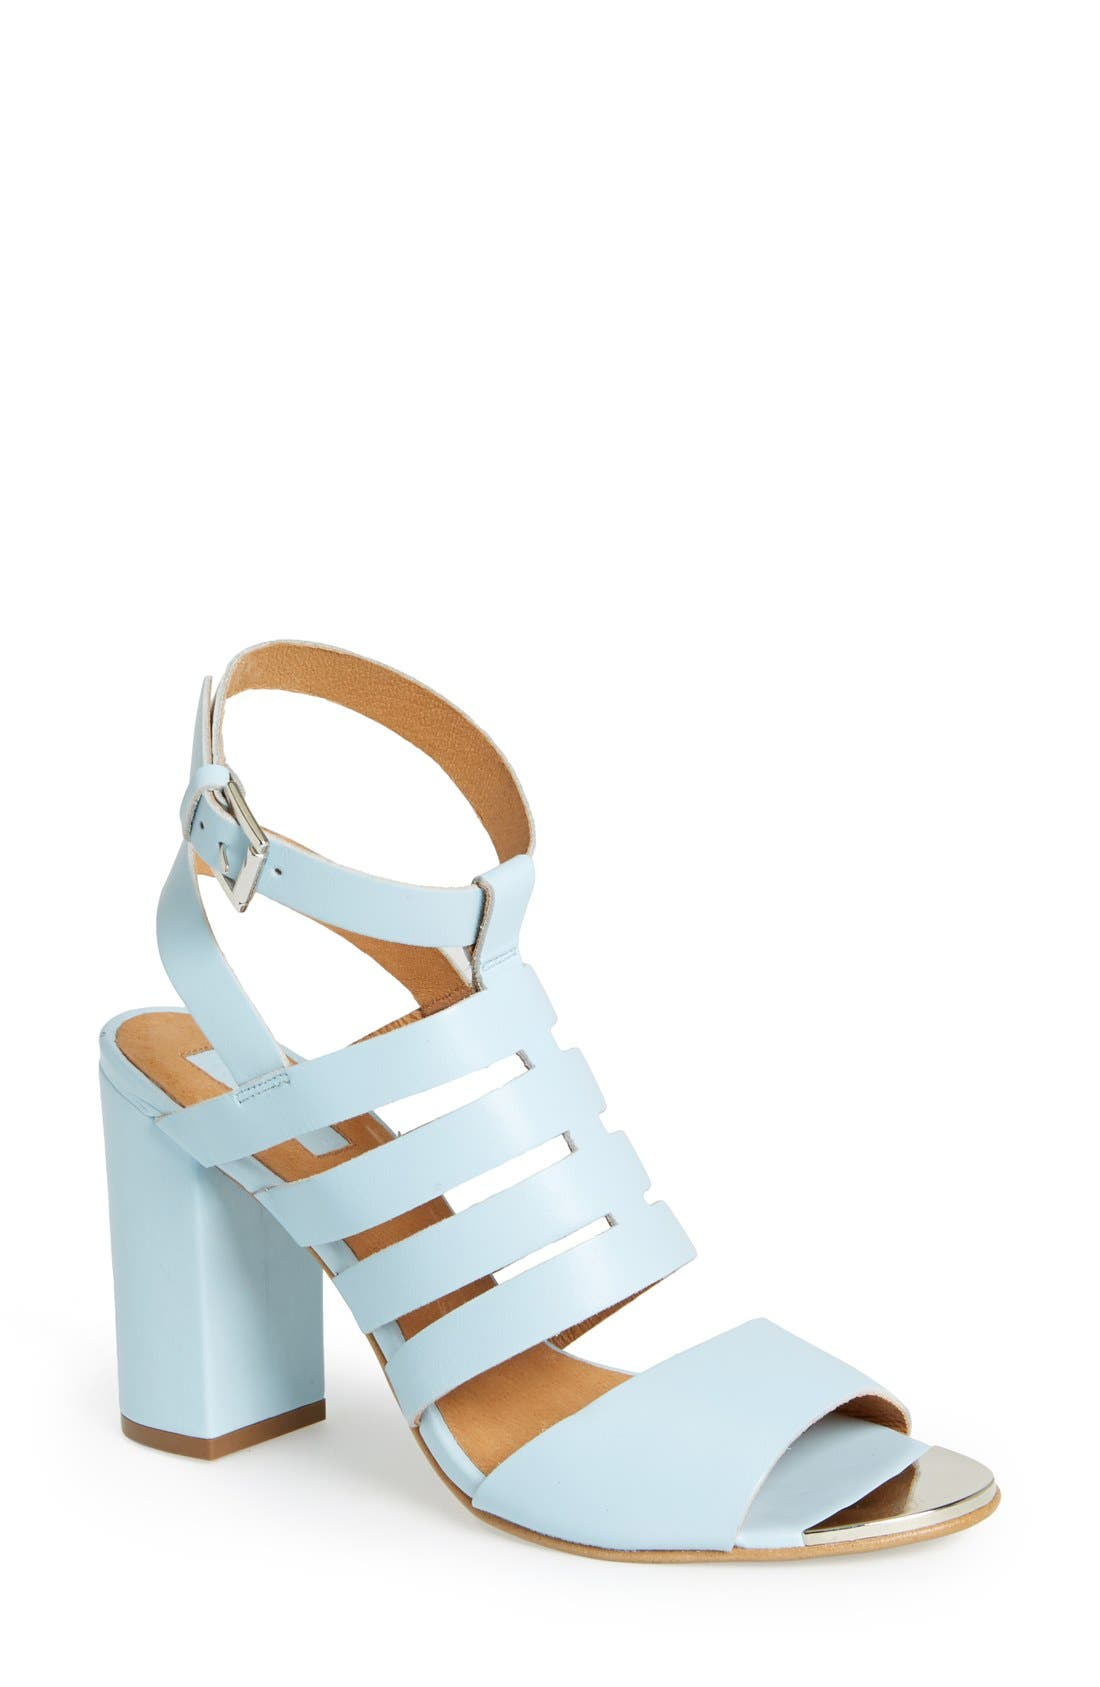 Alternate Image 1 Selected - Topshop 'Rainbow' Sandal